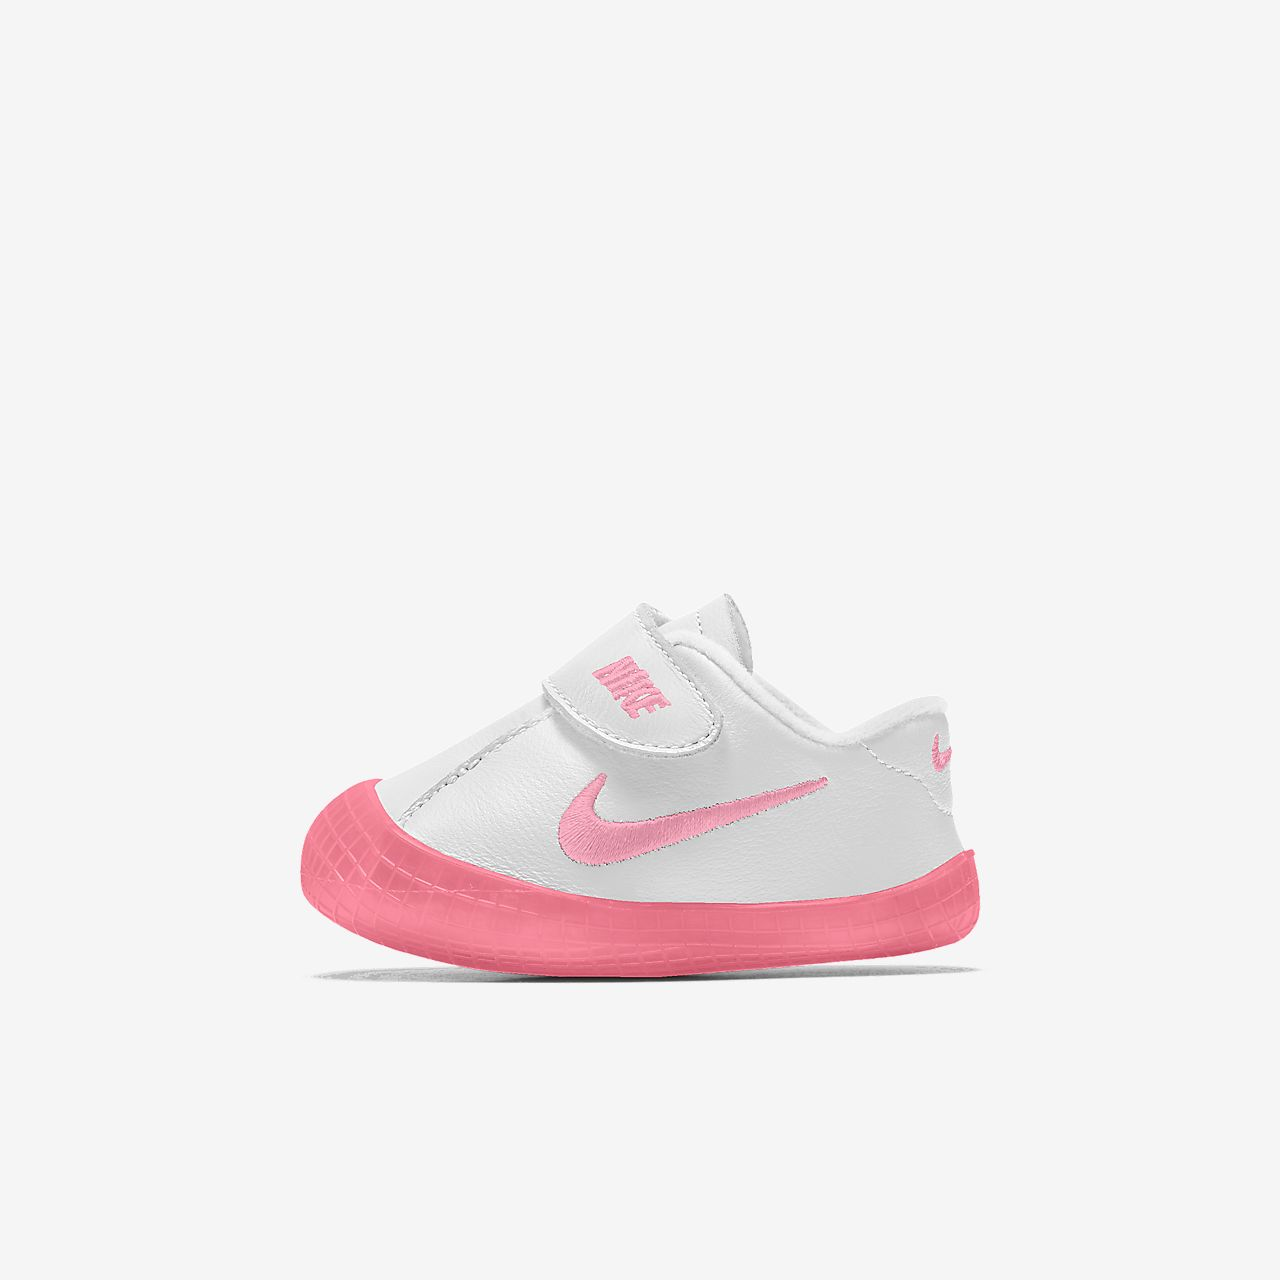 Nike Waffle 1 By You Custom Baby and Toddler Bootie